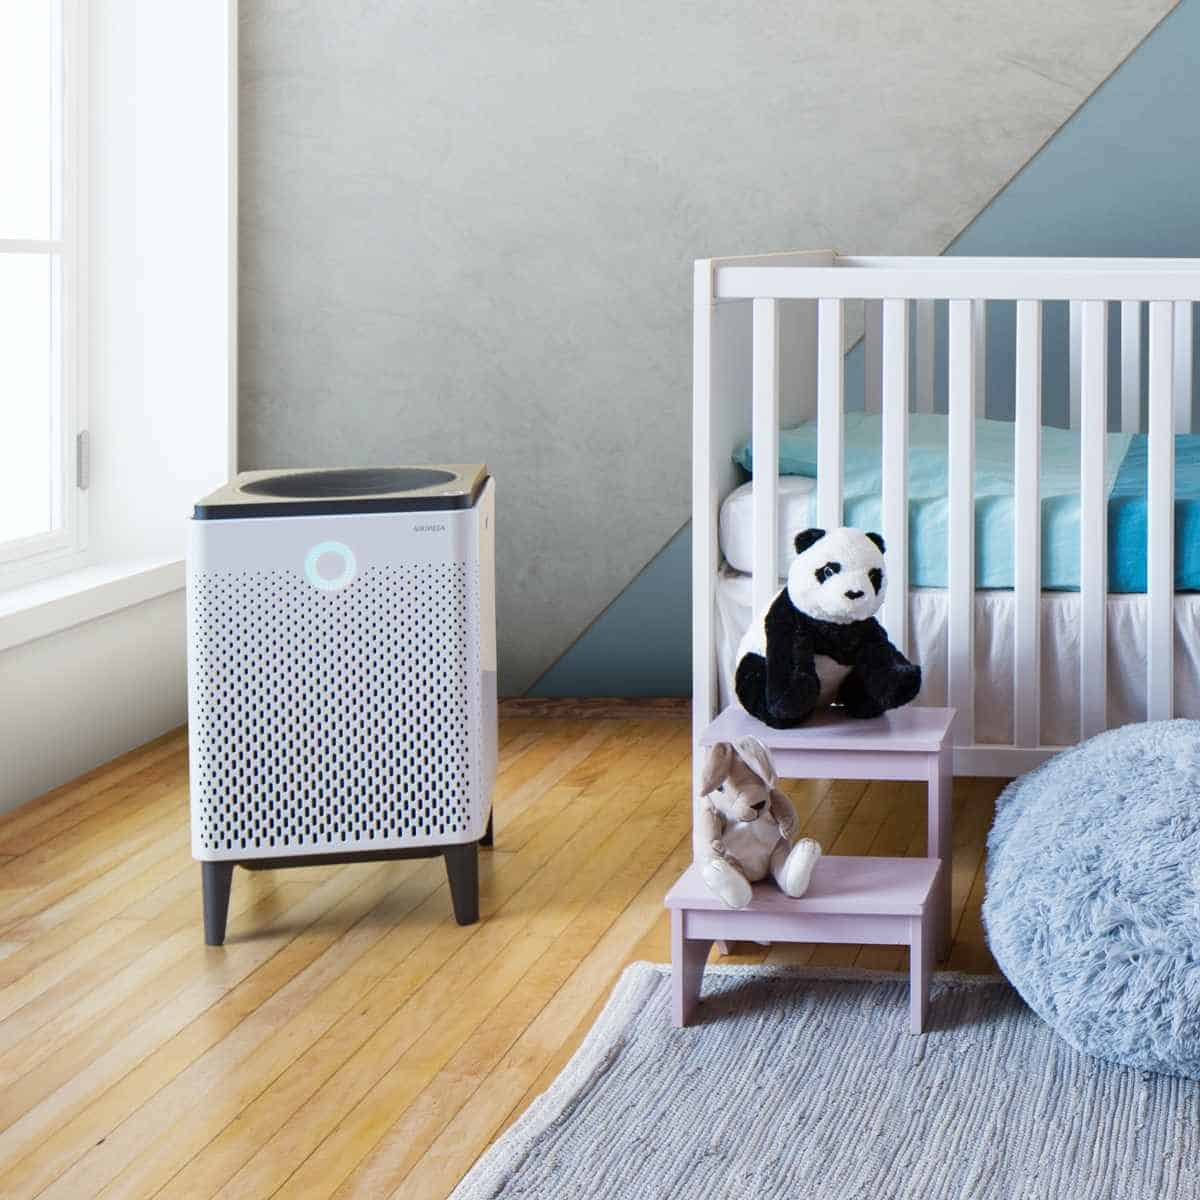 AIRMEGA 300 The Smarter Air Purifier | Top Gadgets To Speed Up Your Spring Cleaning